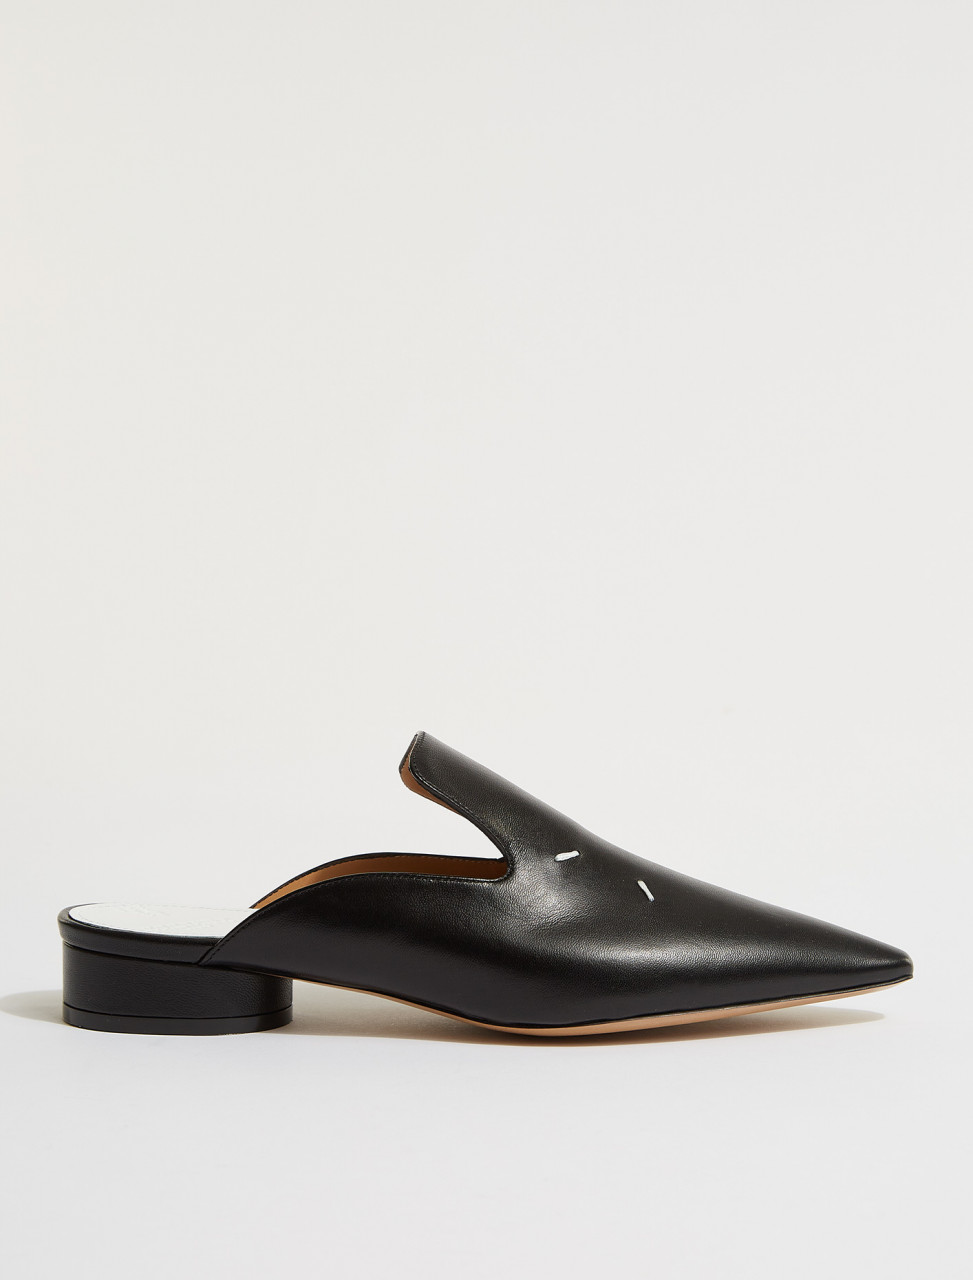 S58WX0089 MAISON MARGIELA TABI POINTY SLIP ON IN BLACK